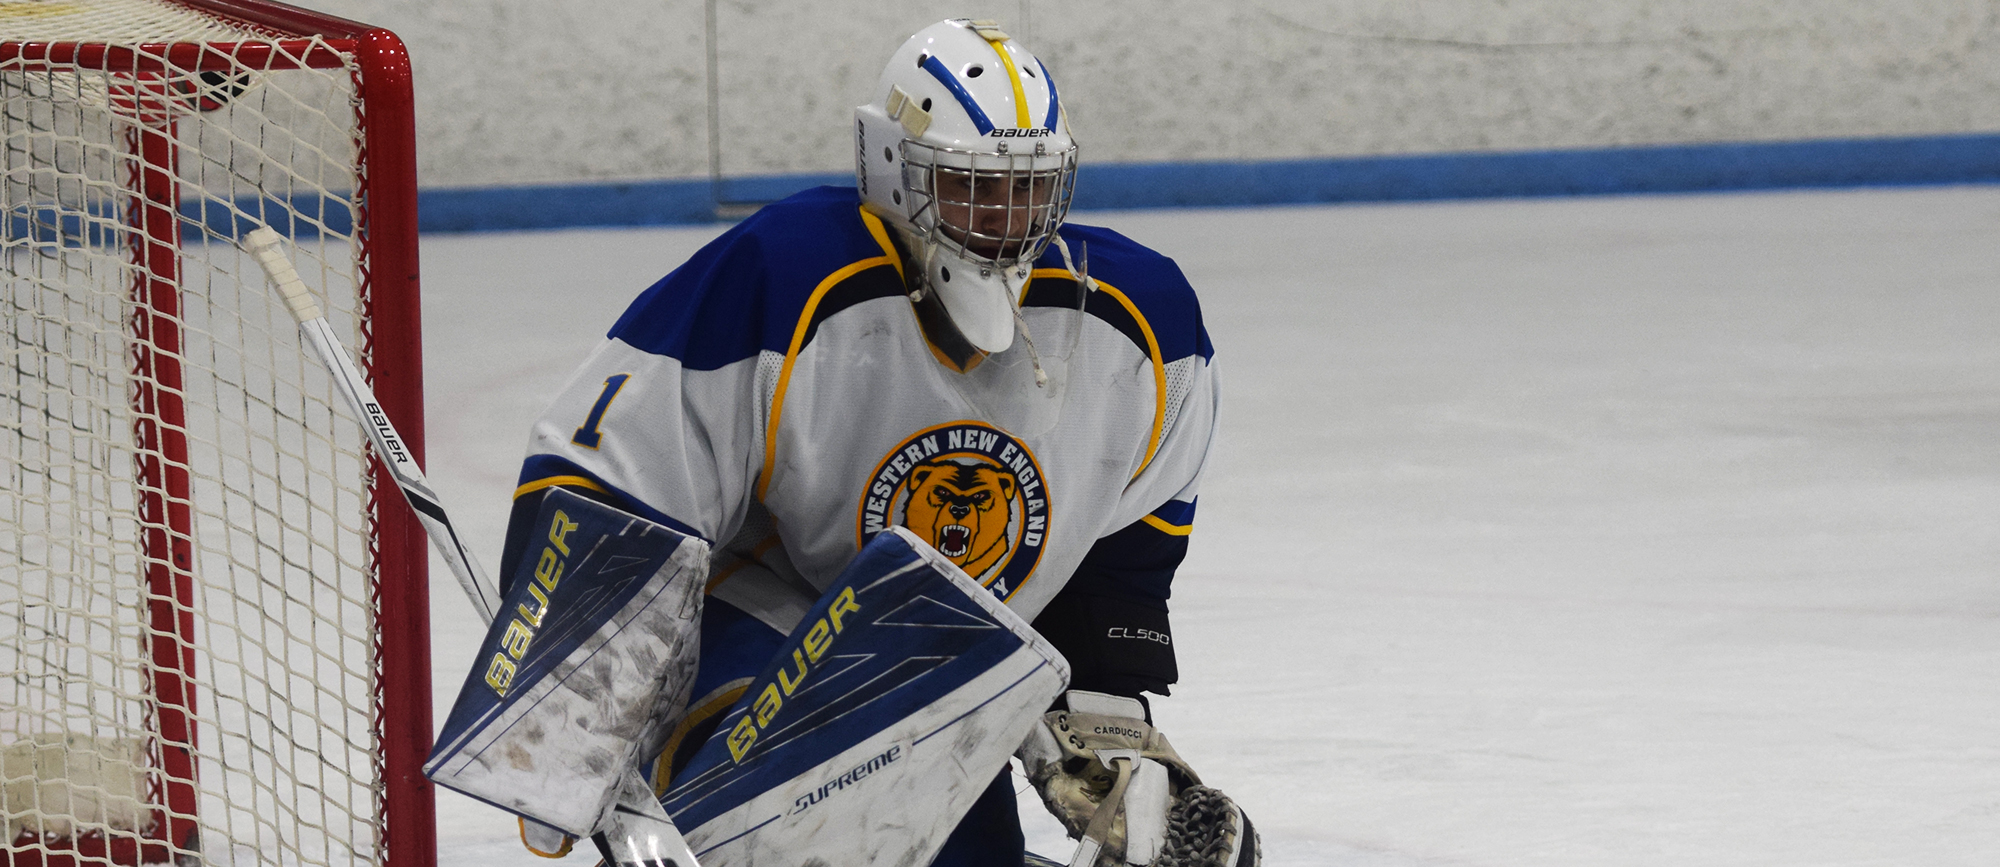 Sophomore Kyle Carducci made six saves in Western New England's 6-3 loss at Becker on Thursday. (Photo by Rachael Margossian)